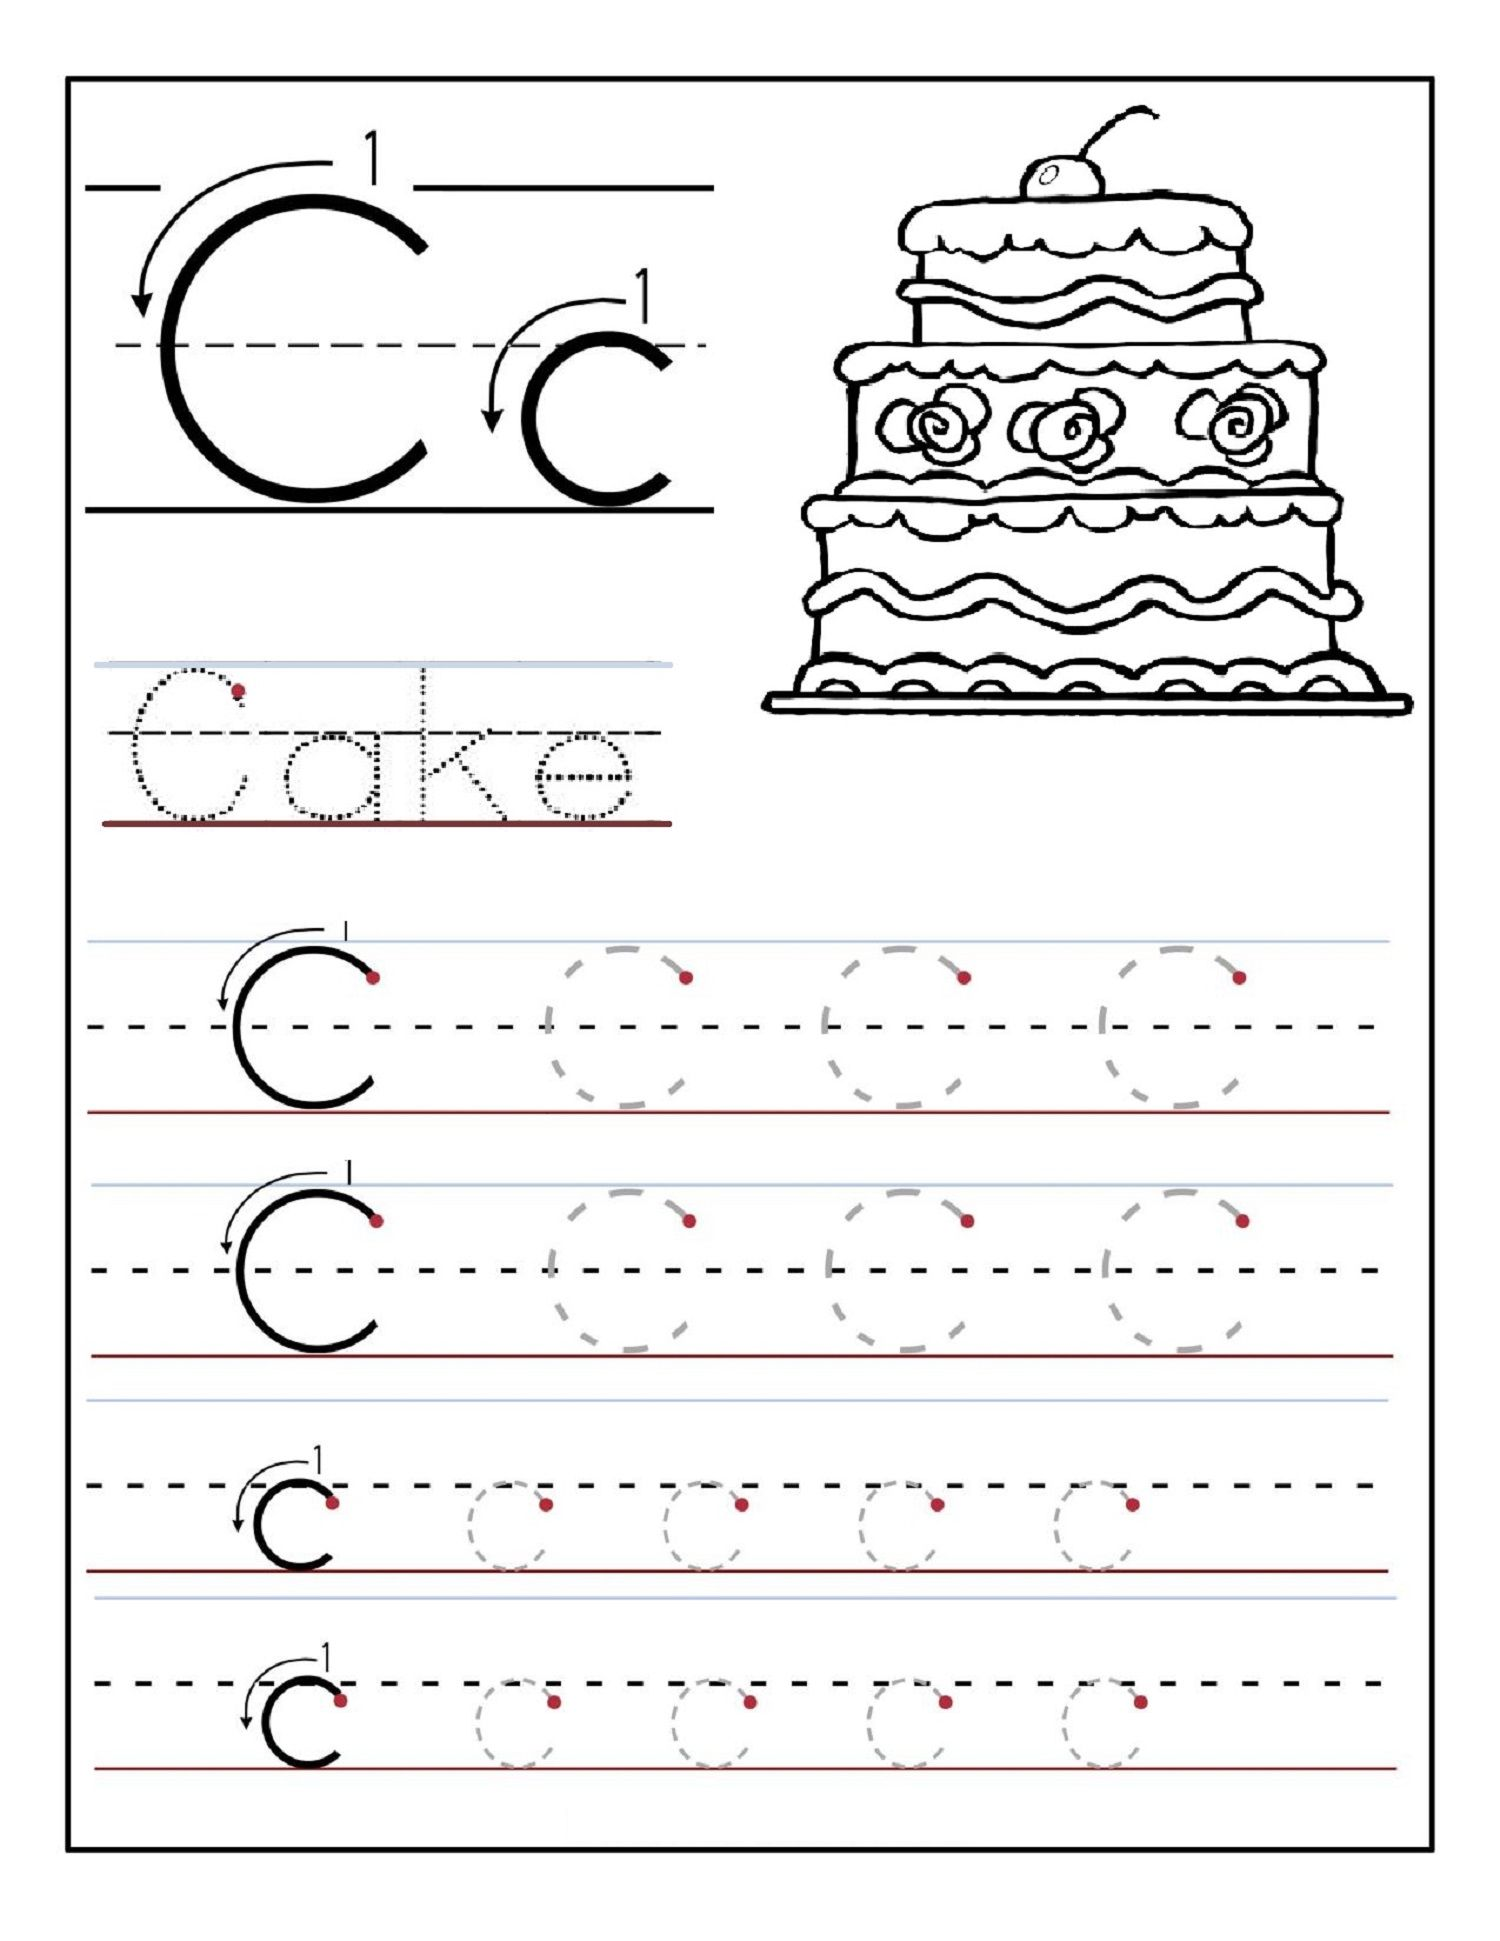 Alphabet Tracing Printables Best for Writing Introduction – Tracing the Alphabet Worksheets for Kindergarten